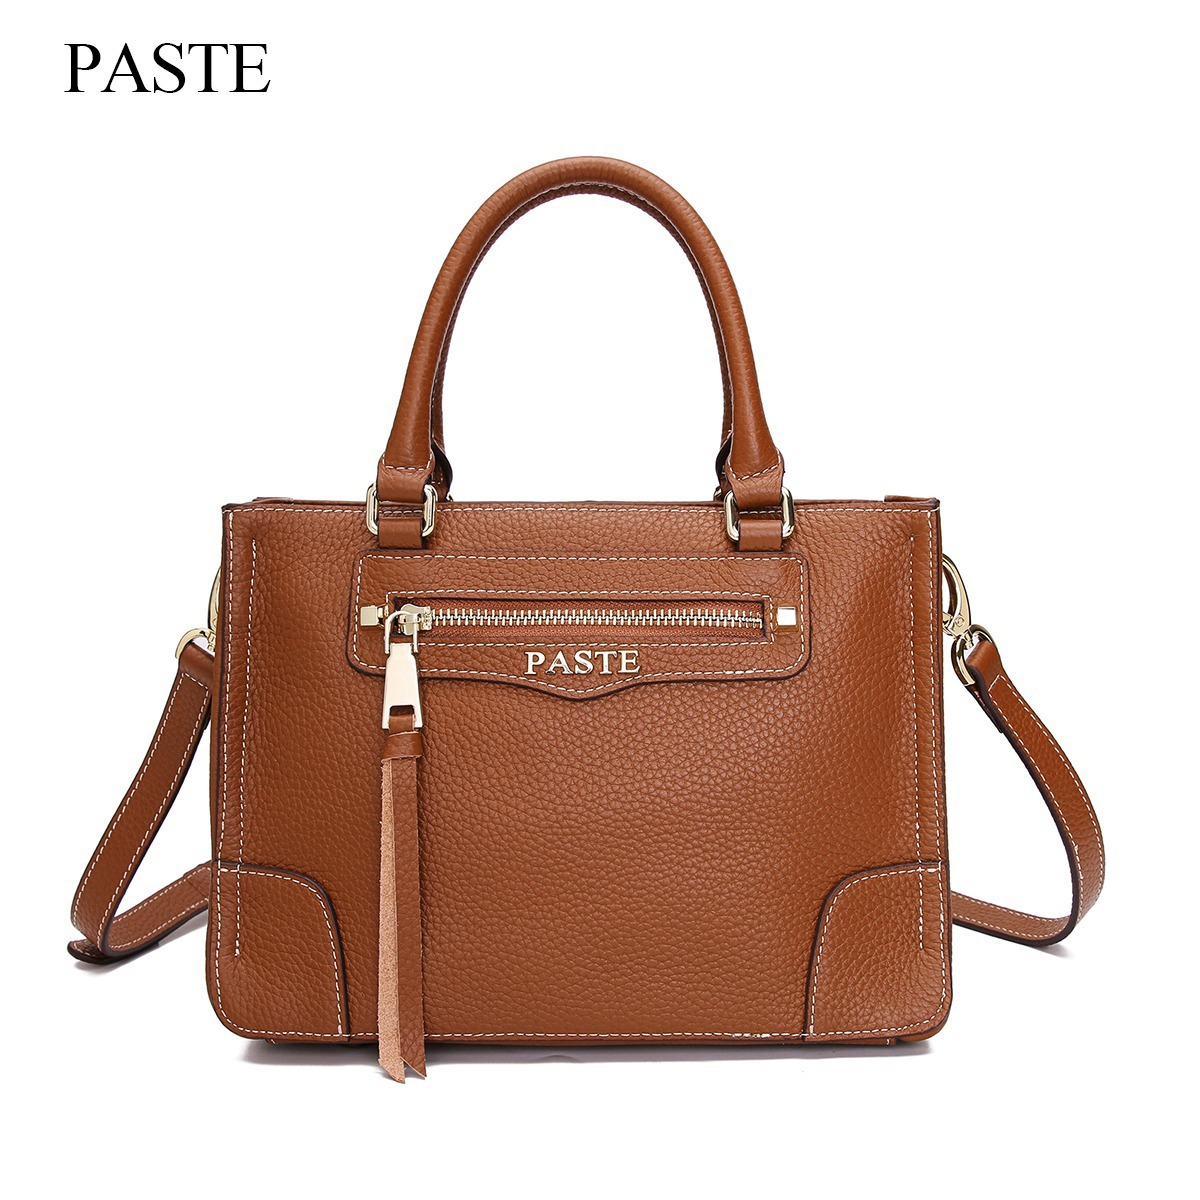 100% Cow Genuine Leather Handbags For Women Luxury Designer Tote Shoulder Bag Female&Ladies Messenger Bags Small Hand Bag PT36 набор фужеров pasabahce bistro цвет прозрачный 275 мл 6 шт